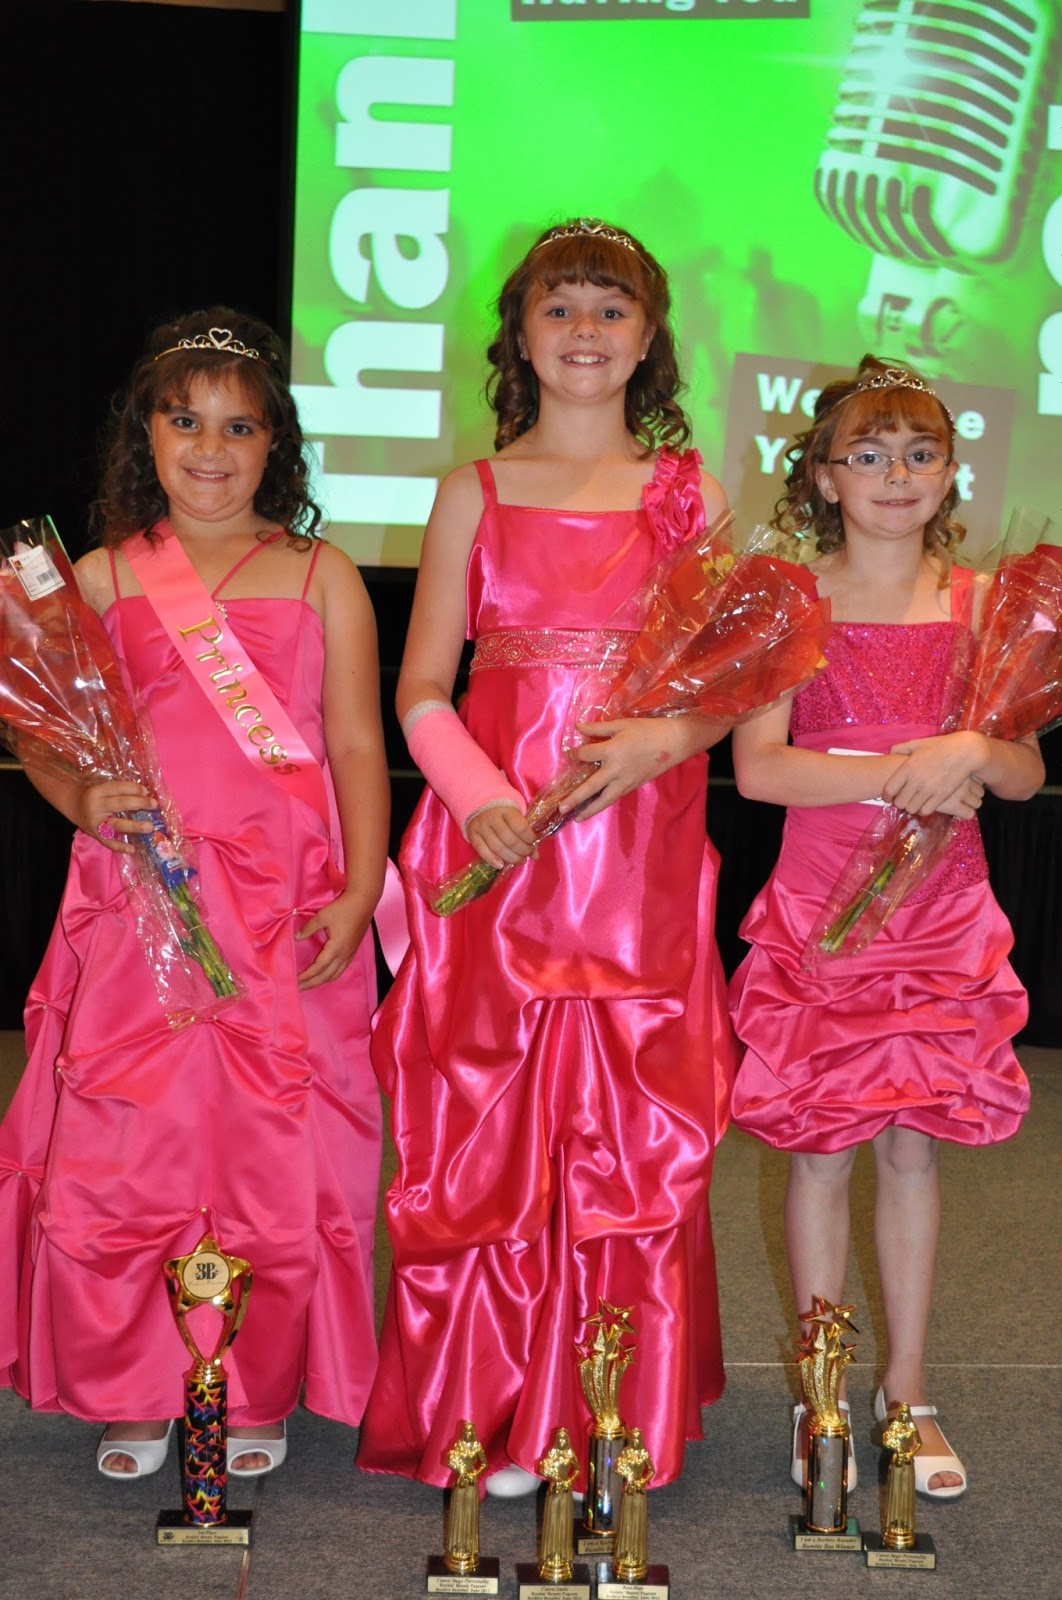 5 small children i love being able to share good things i am so proud of the girls they did a beauty pageant and did wonderfully the first category was rockstar and then